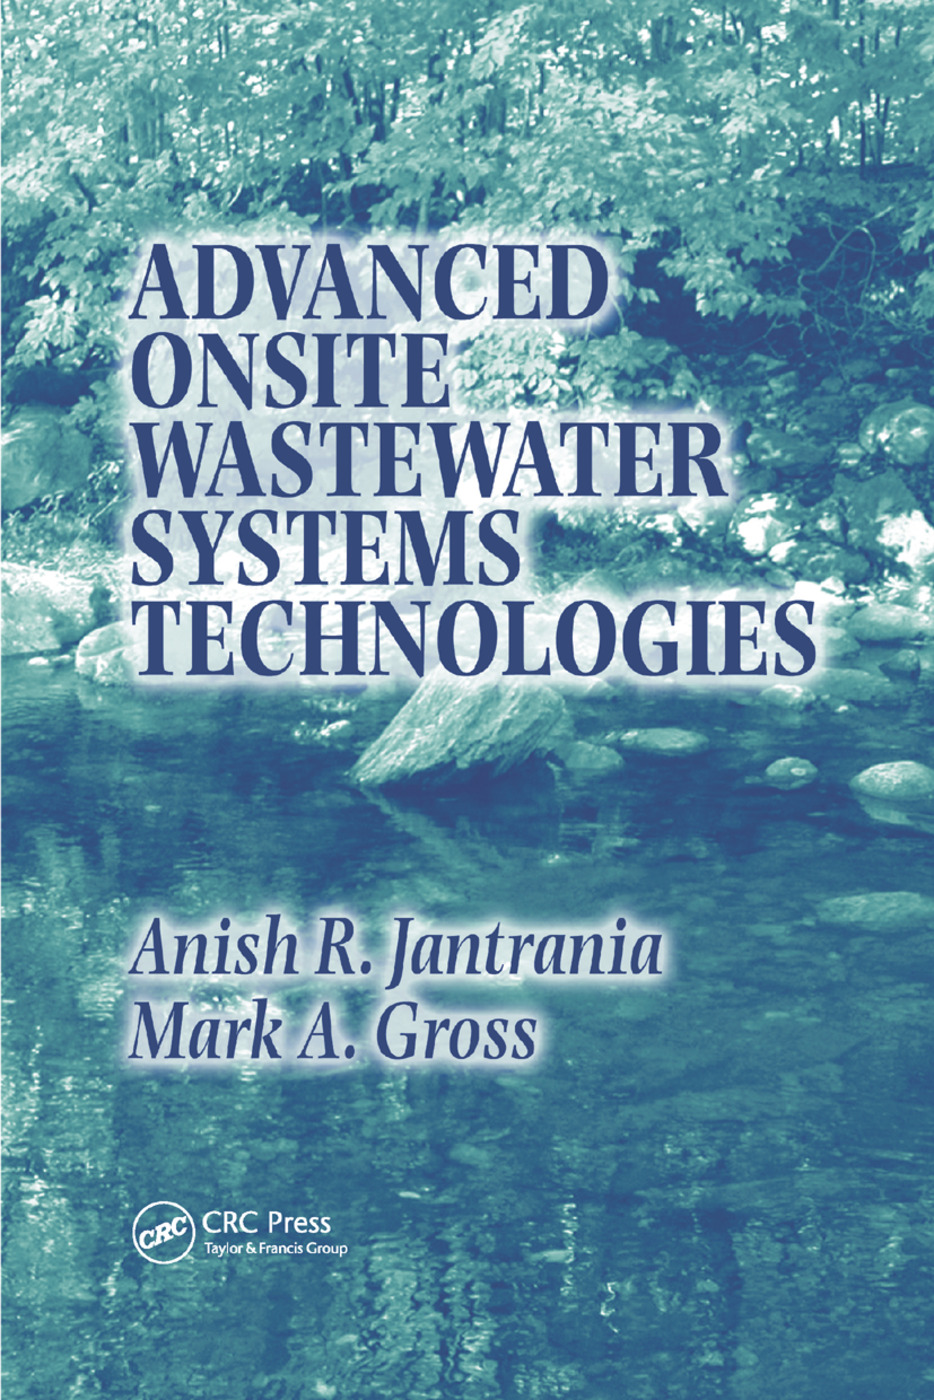 Advanced Onsite Wastewater Systems Technologies: 1st Edition (Paperback) book cover